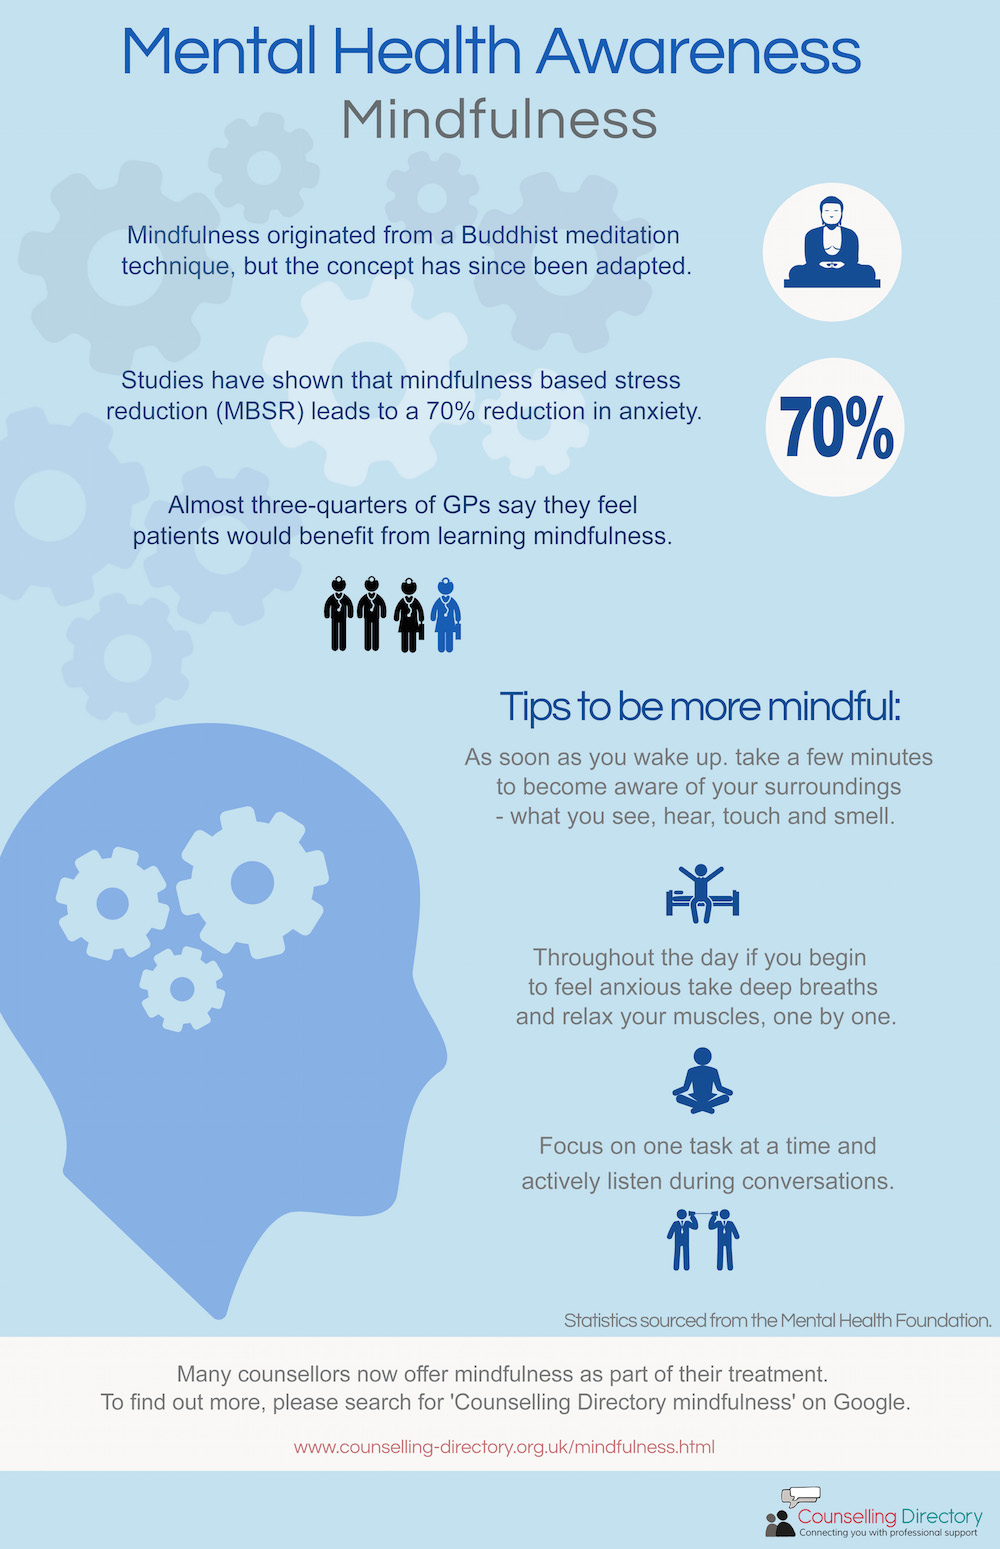 Mental Health Awareness - Mindfulness